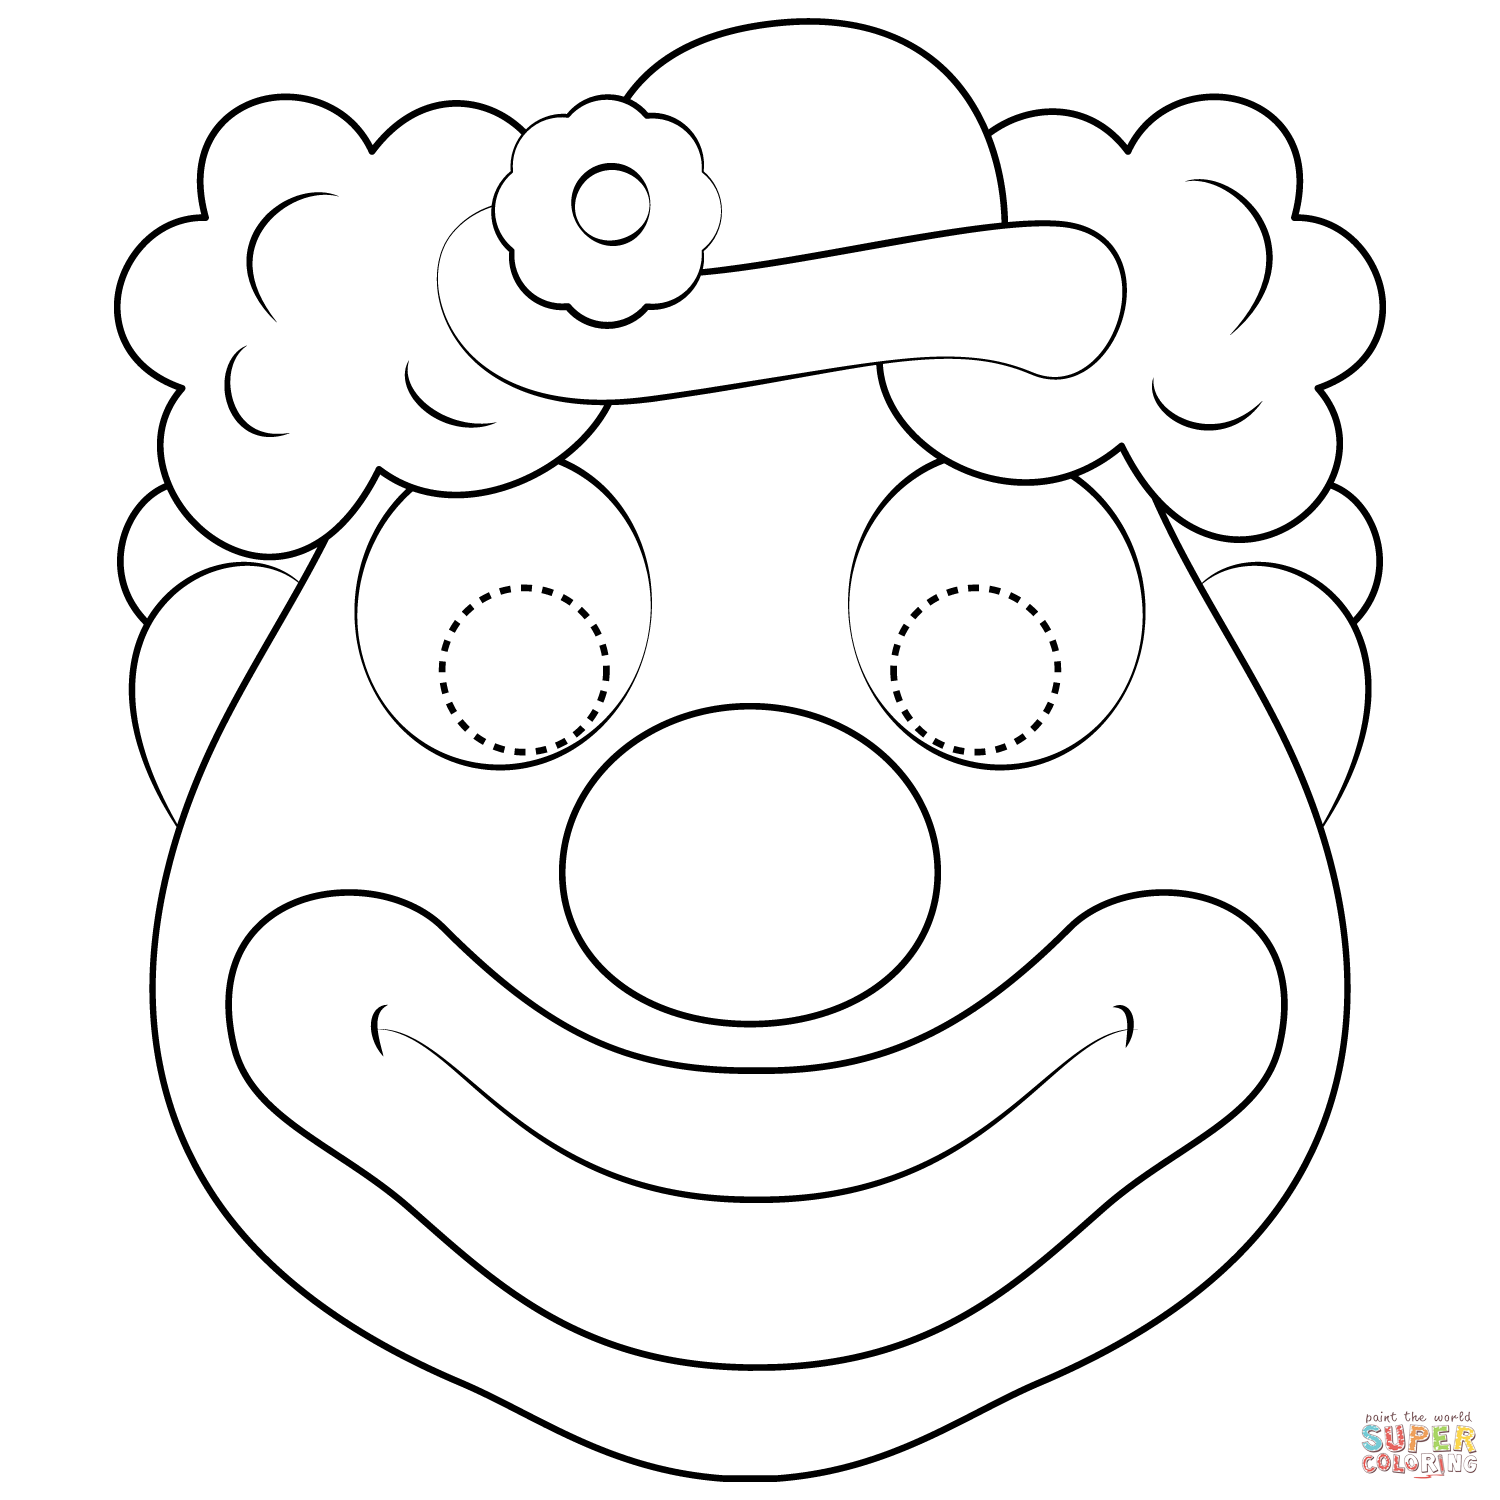 Clown Mask Coloring Page Free Printable Coloring Pages Printable Coloring Masks Coloring Mask Printable Coloring Pages